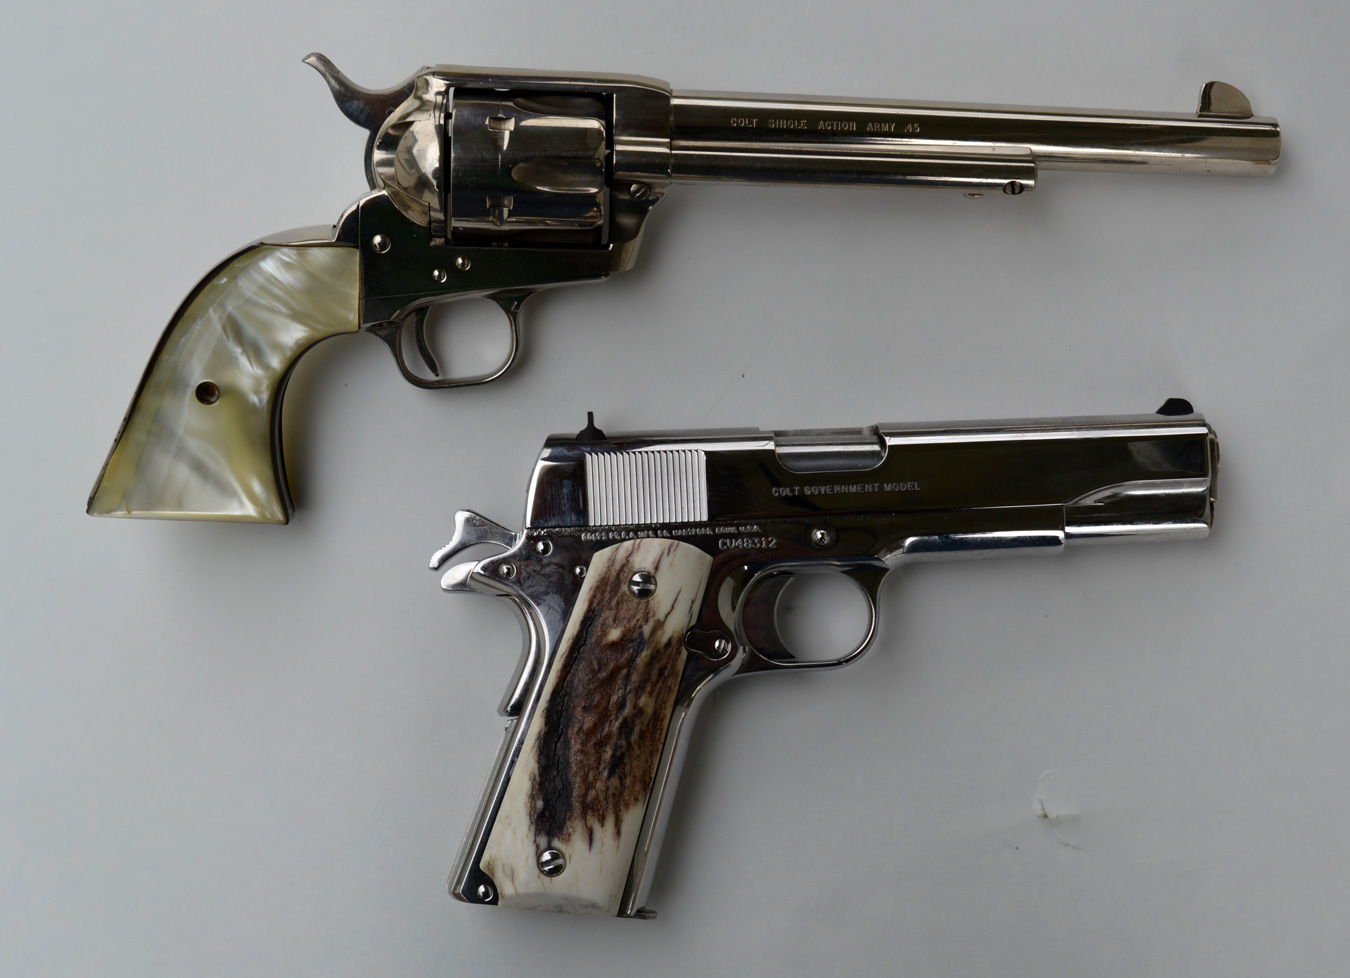 Colt Single Action Army, top and Colt Government model 1911 bottom